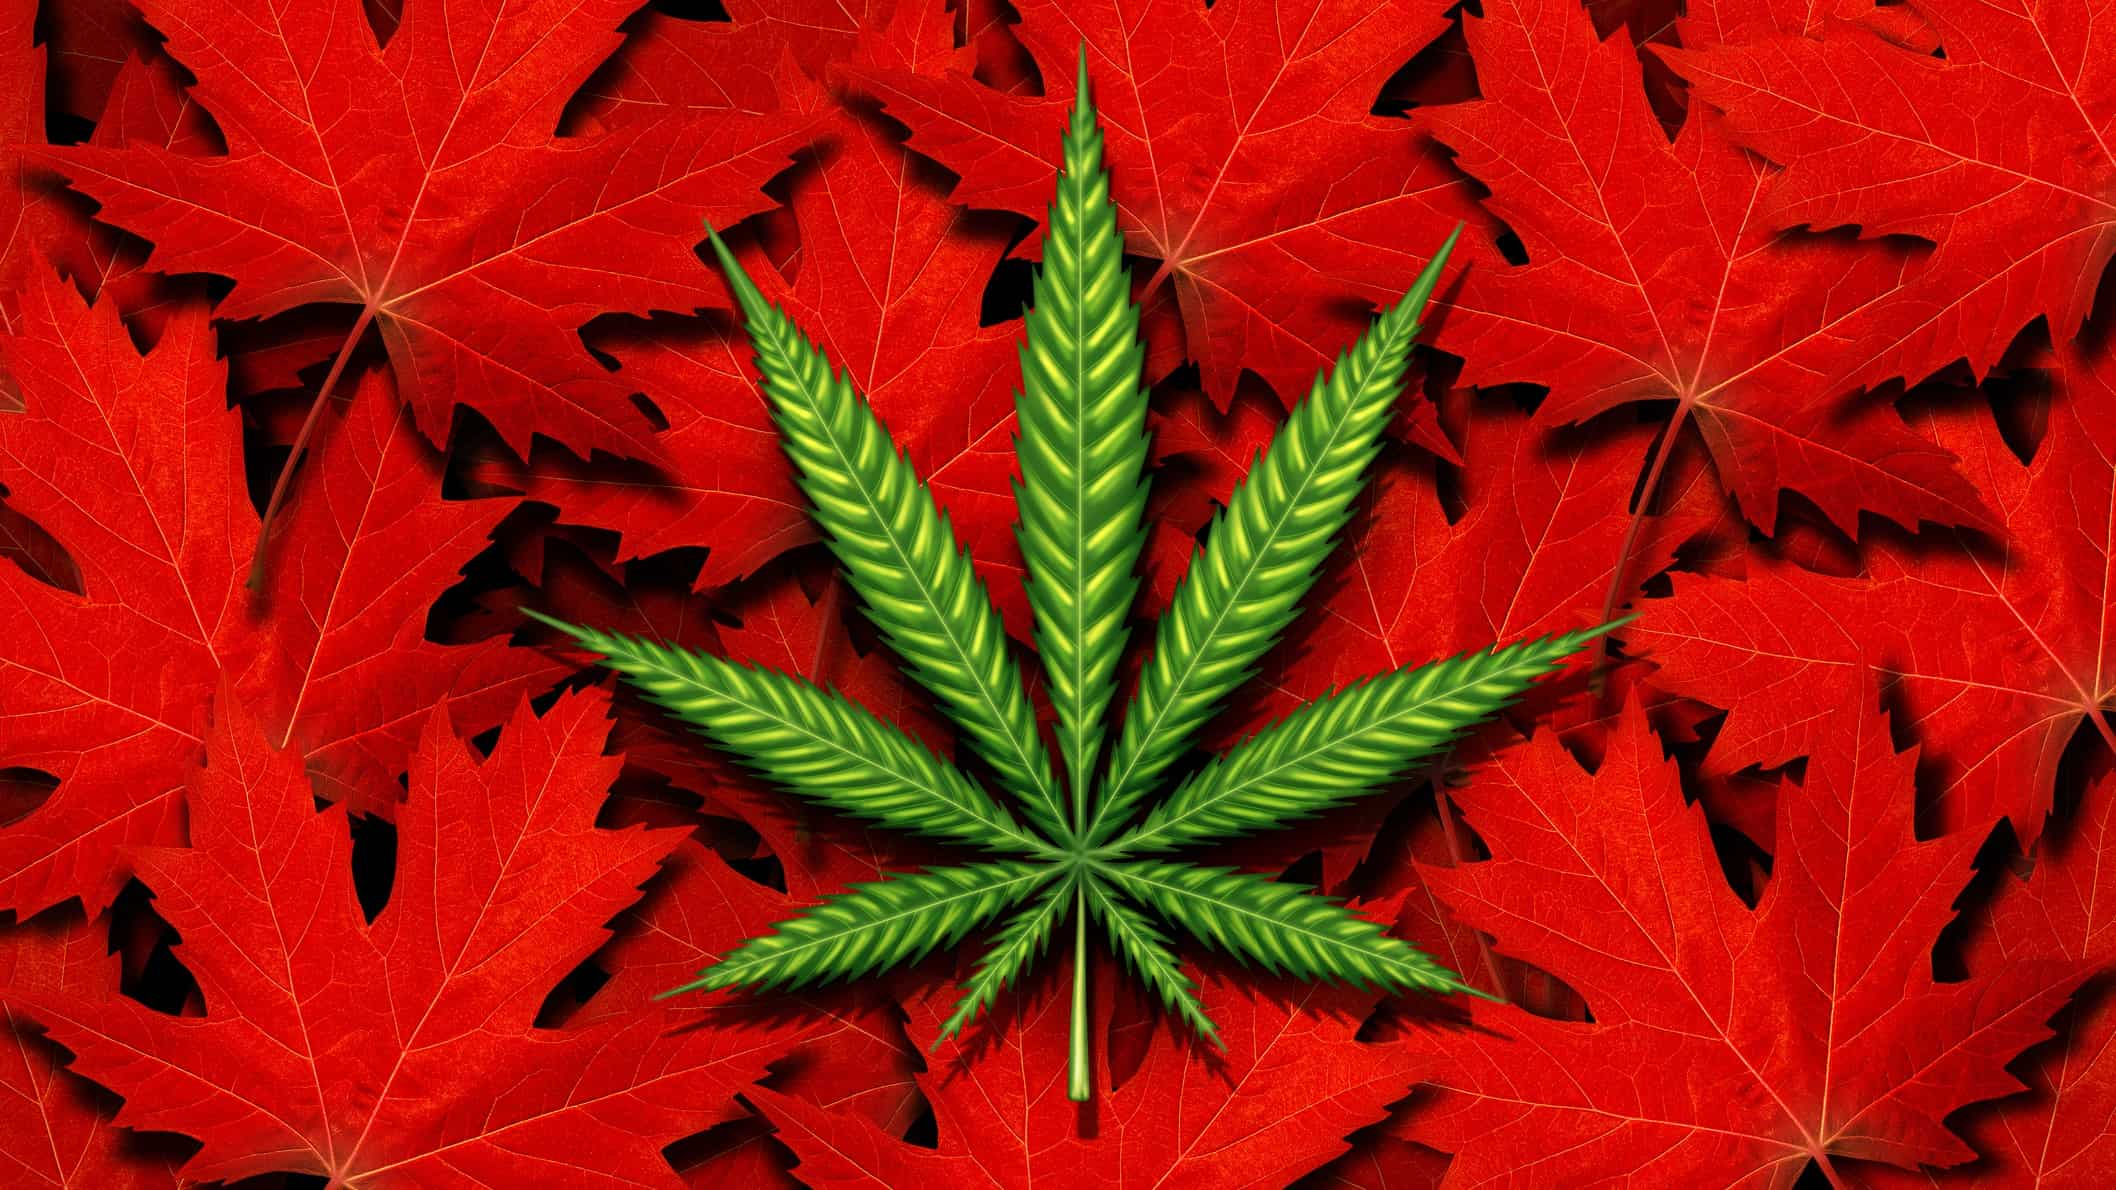 green cannabis leaf representing althea share price sitting atop red maple leaves